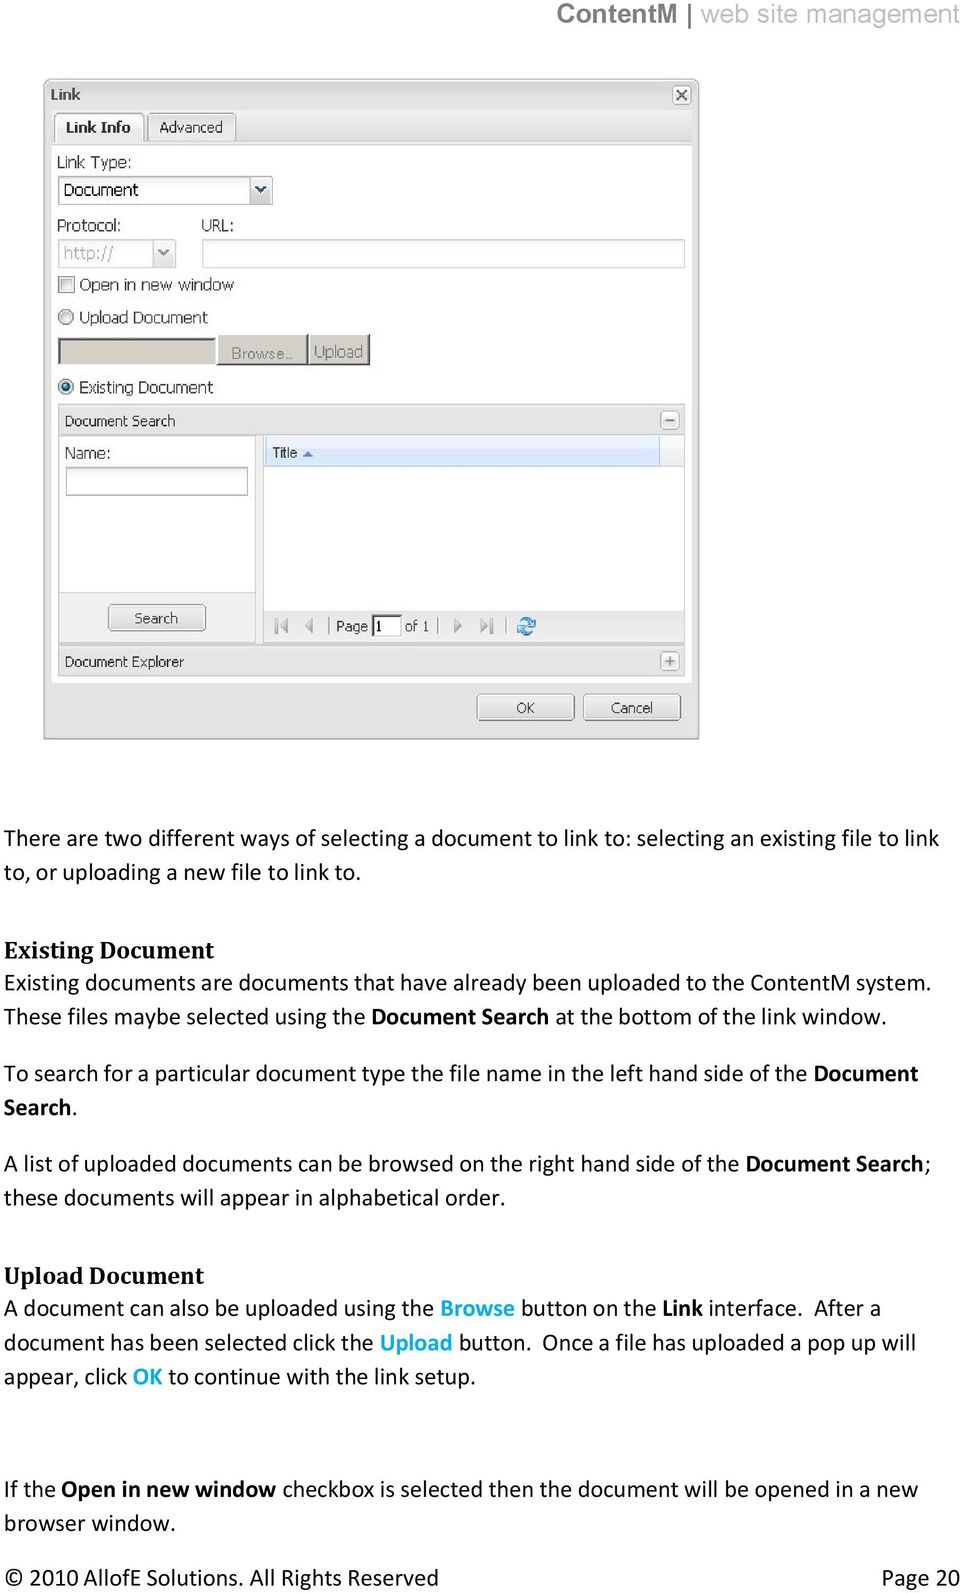 To search for a particular document type the file name in the left hand side of the Document Search.